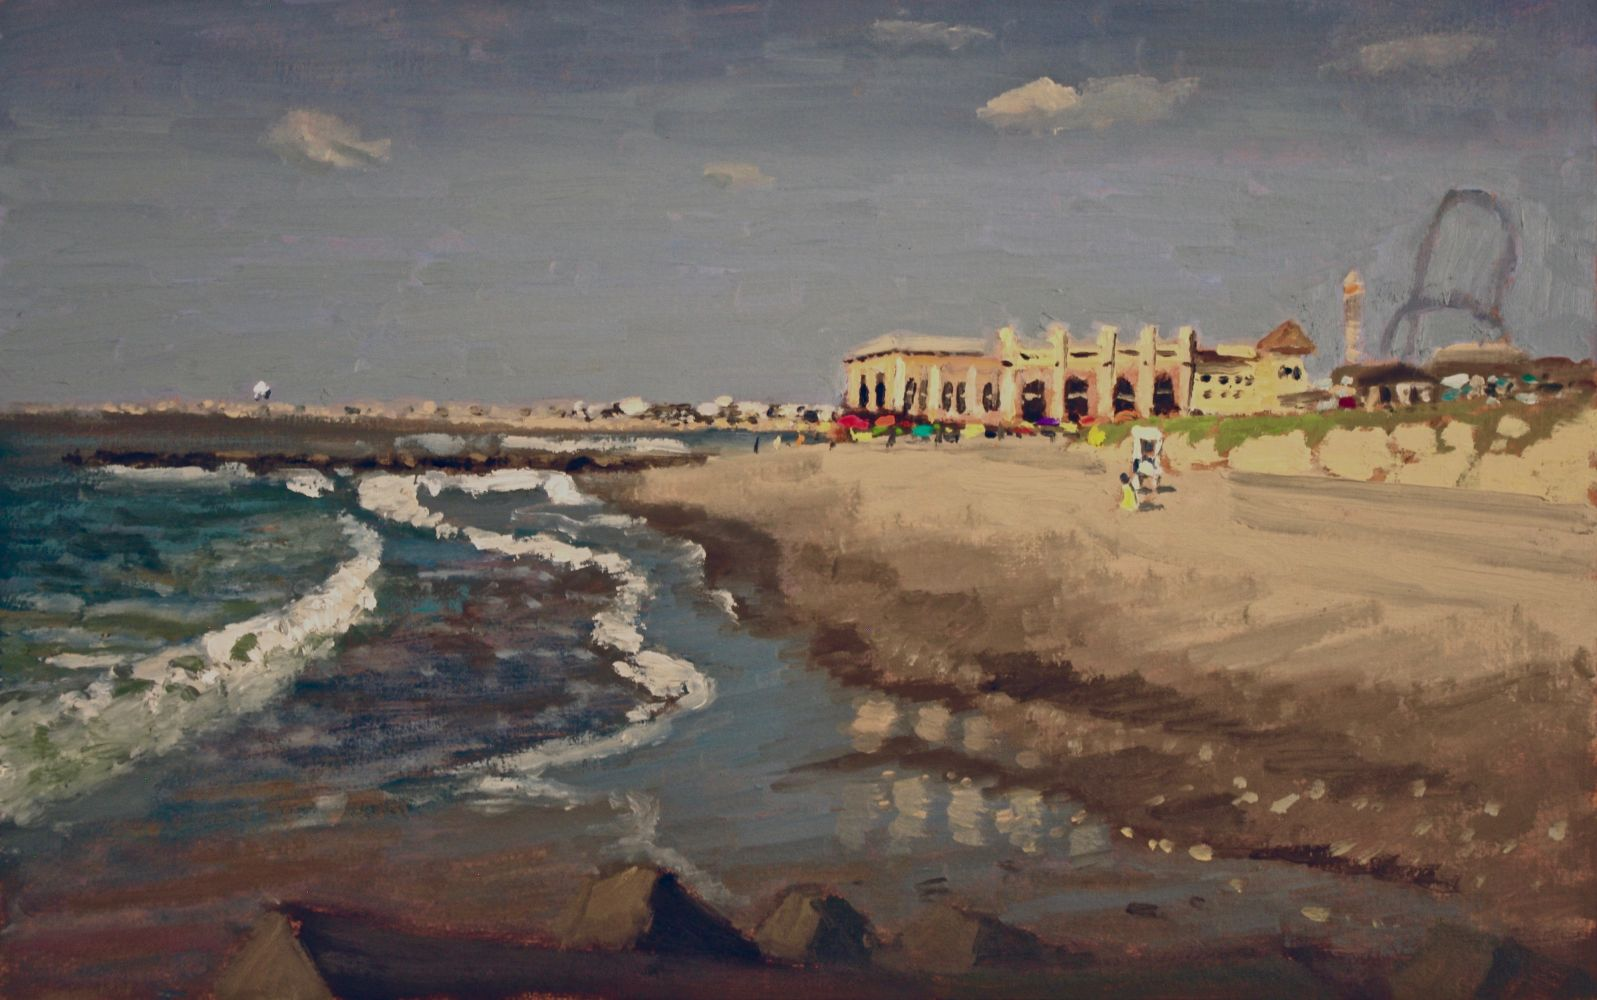 Giovanni Casadei, Distant Music Pier, oil on panel,  9 x 14 inches